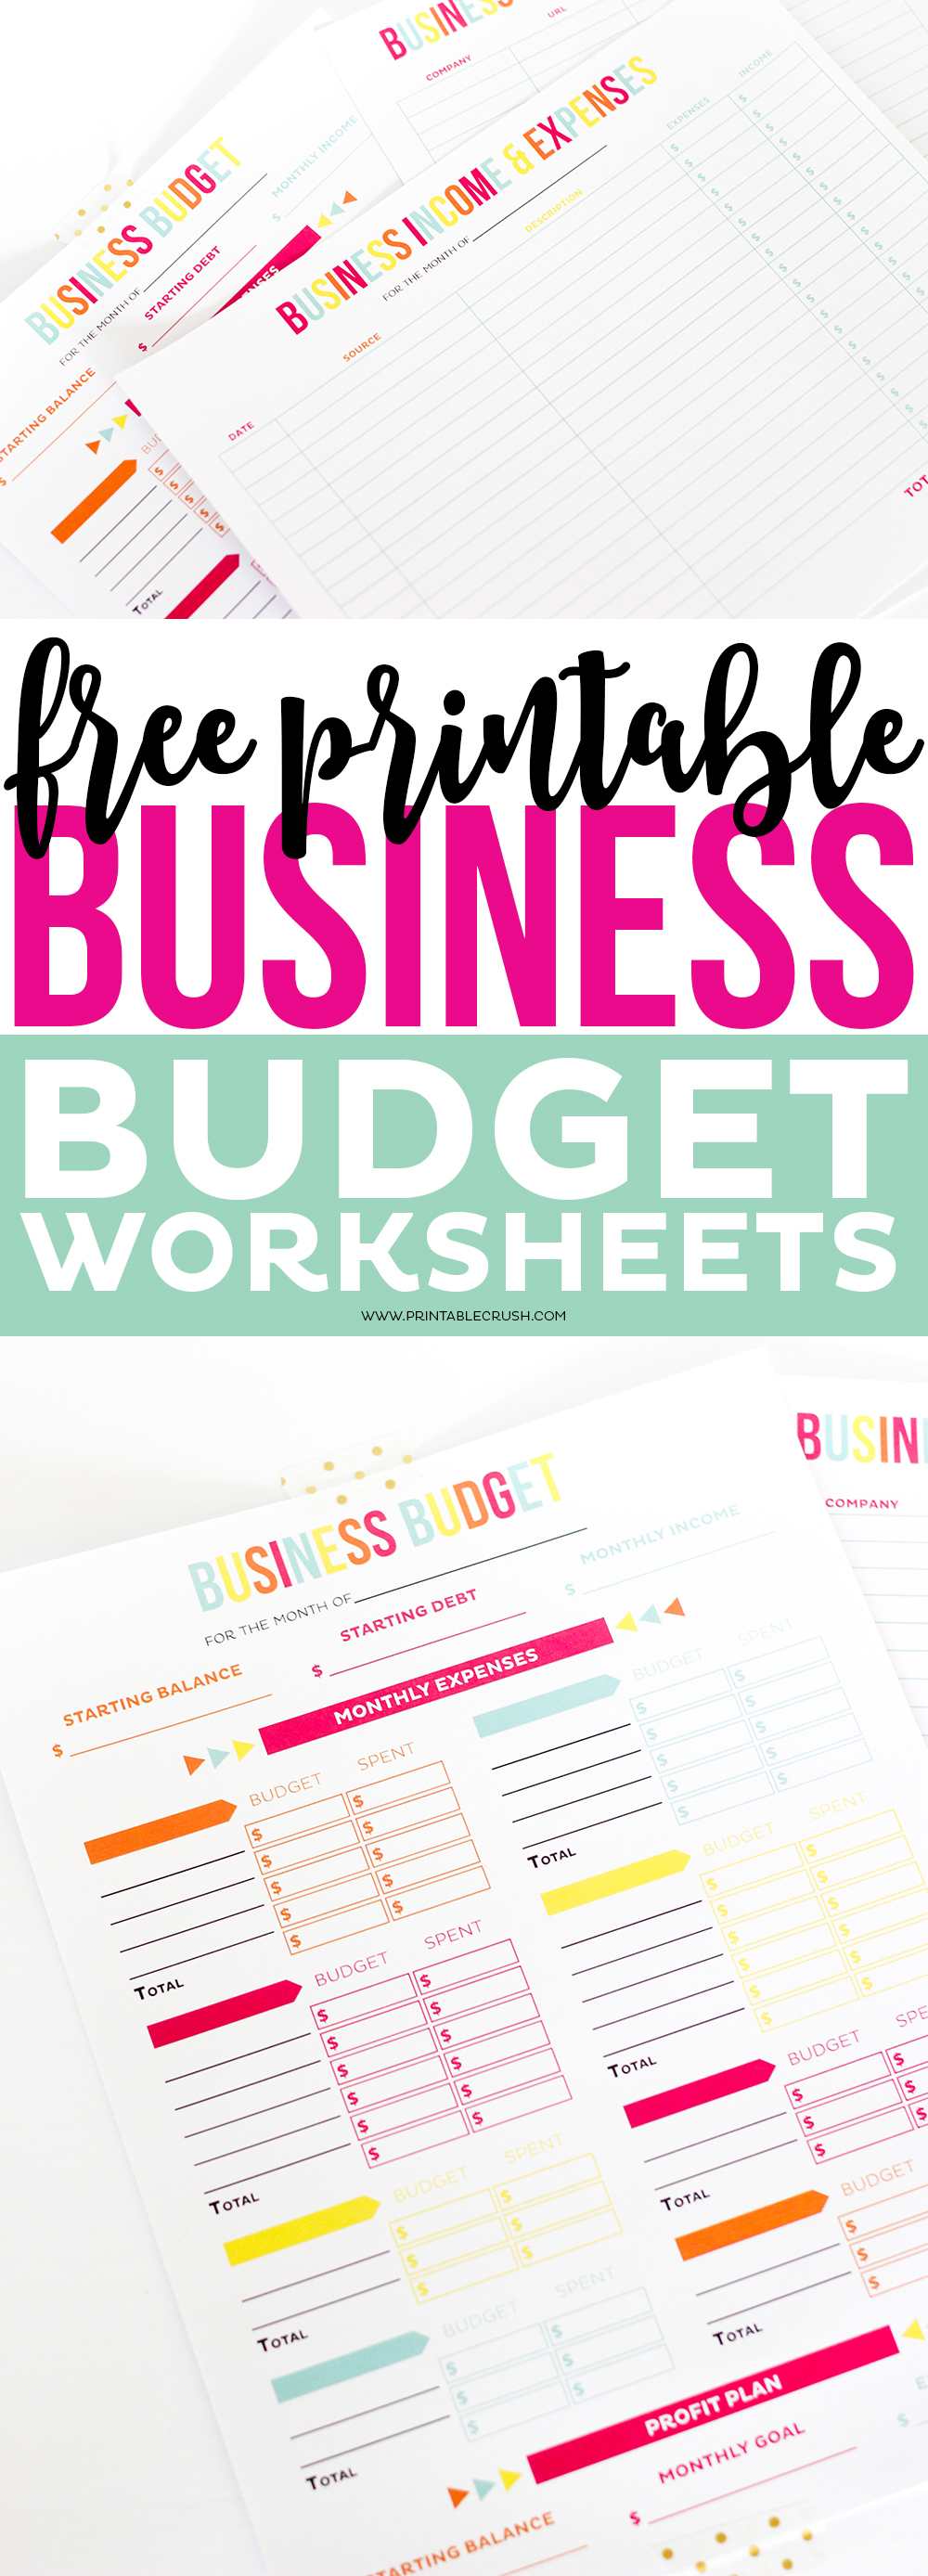 Make tax time a little less so with these FREE Printable Business Budget Worksheets! Includes expense and income track sheet, budget sheet, and a bonus password tracker for your online business accounts!